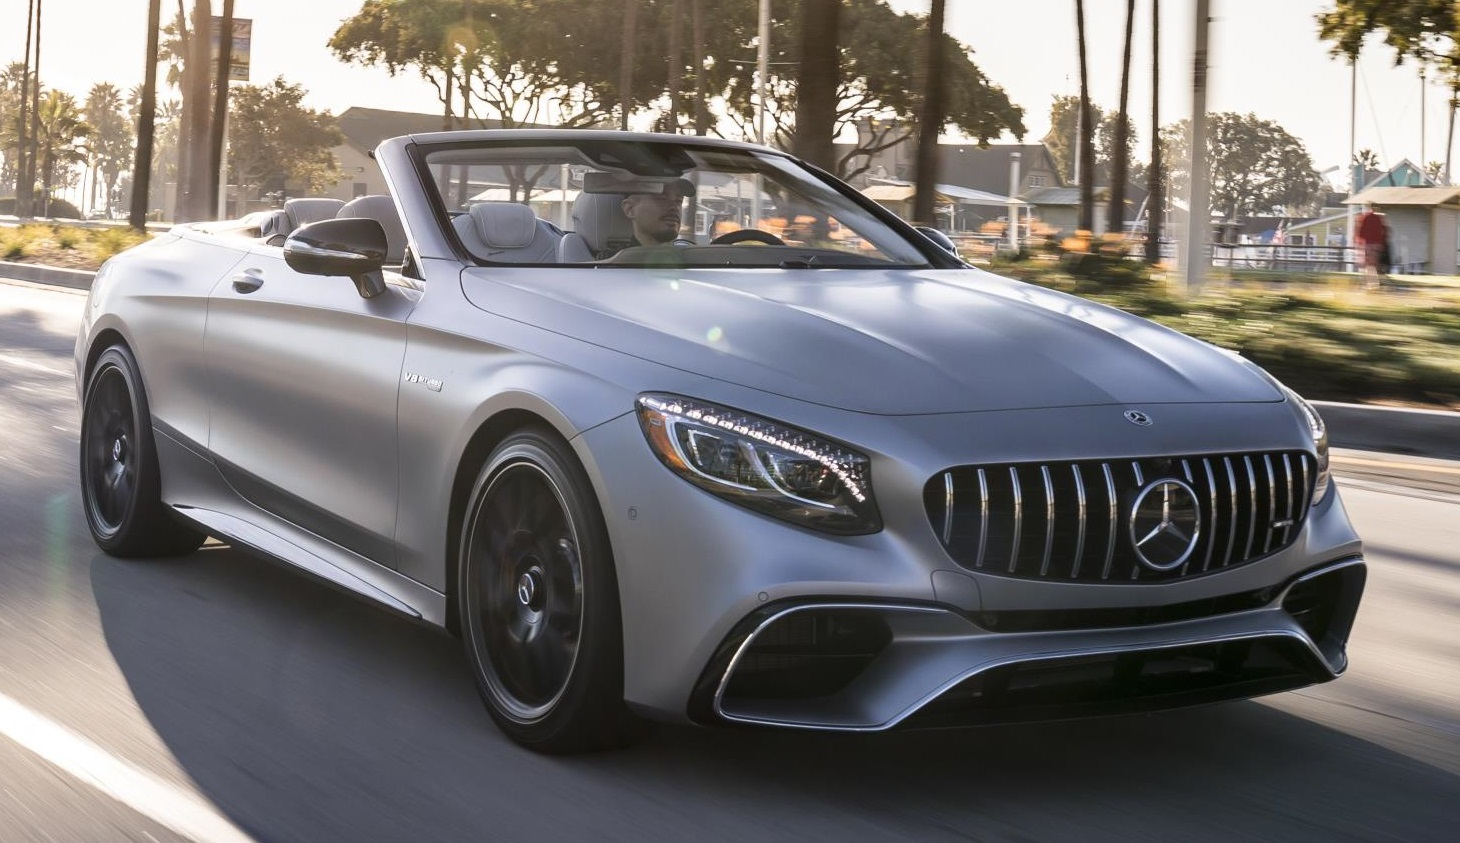 2018 mercedes s class cabriolet s560 s63 s65 uk pricing and specs. Black Bedroom Furniture Sets. Home Design Ideas